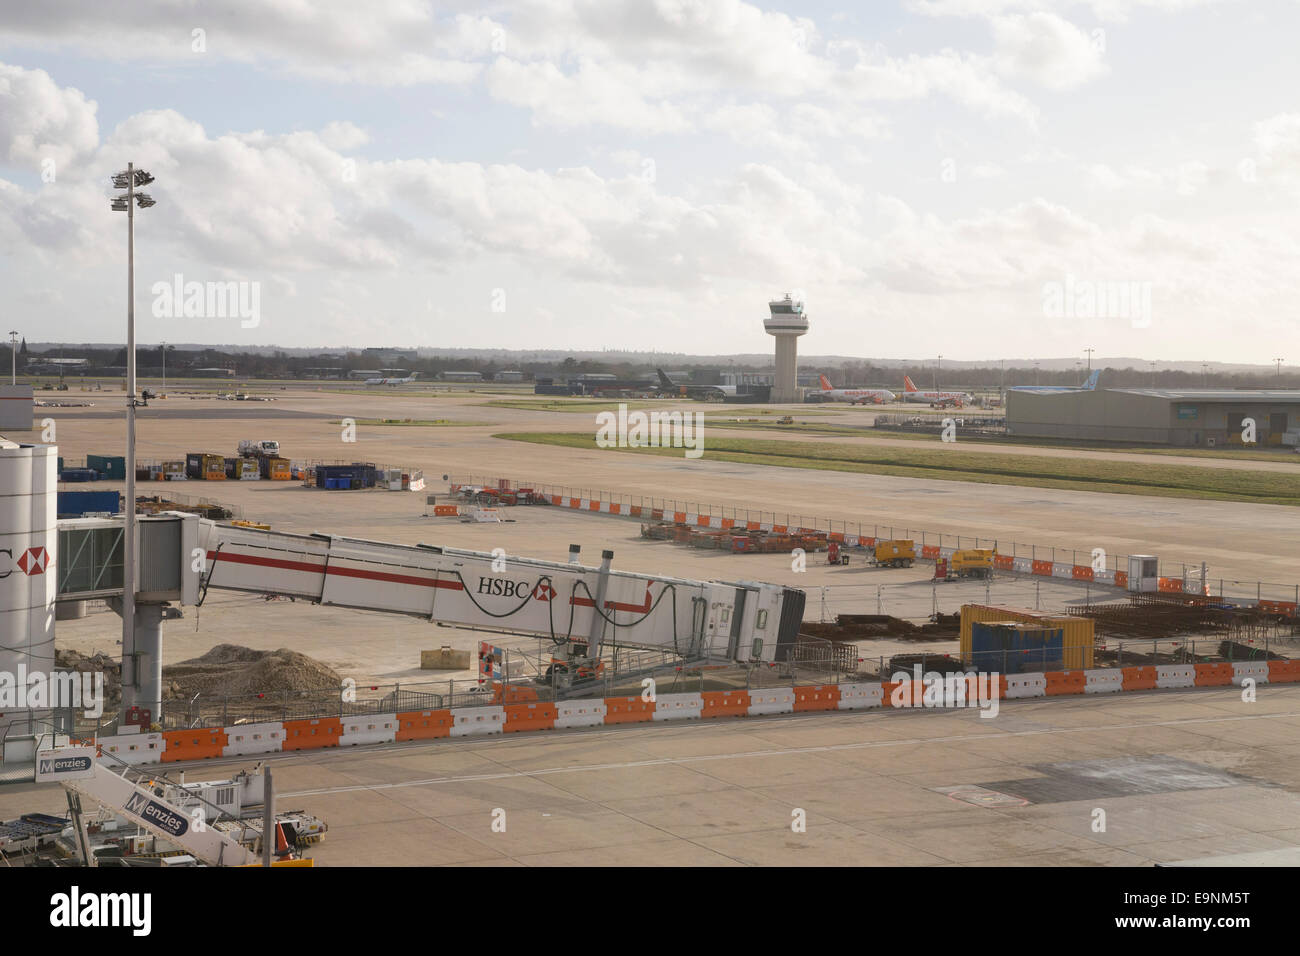 London Gatwick Airport, view from the terminal building. Repairs.Tarmac. - Stock Image